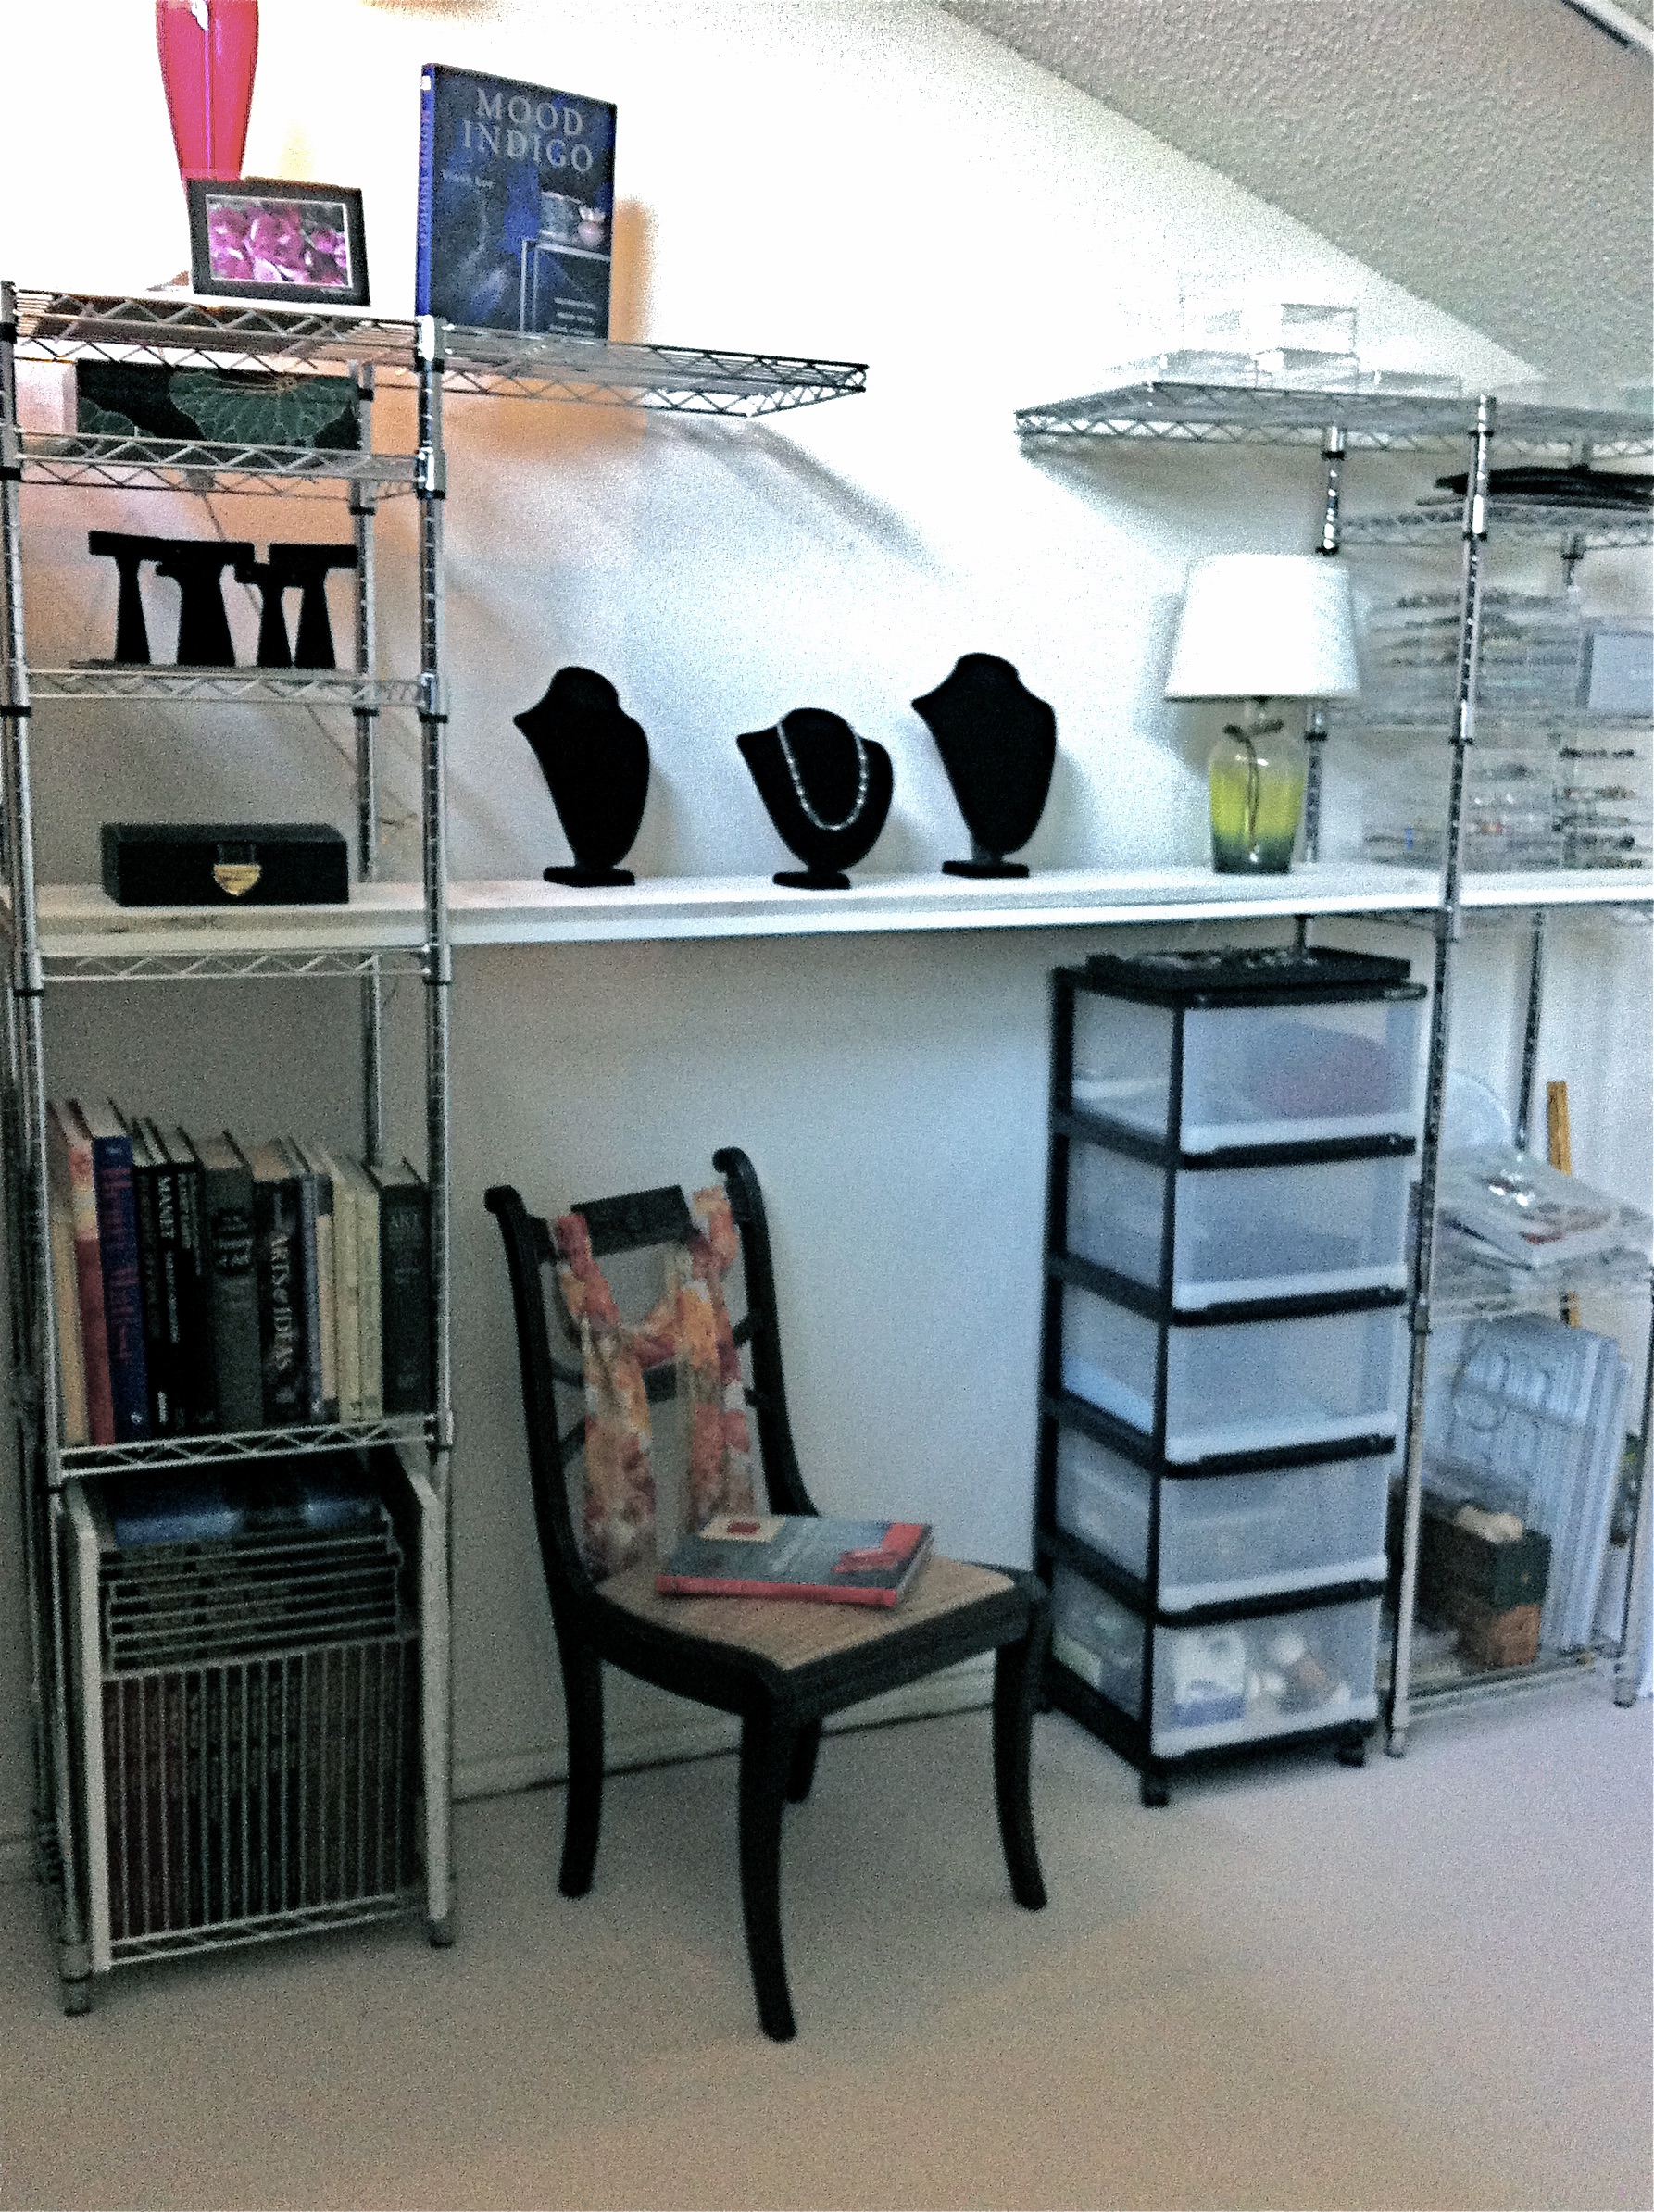 Pairing materials with needs resulted in jeweler's workroom and display area.